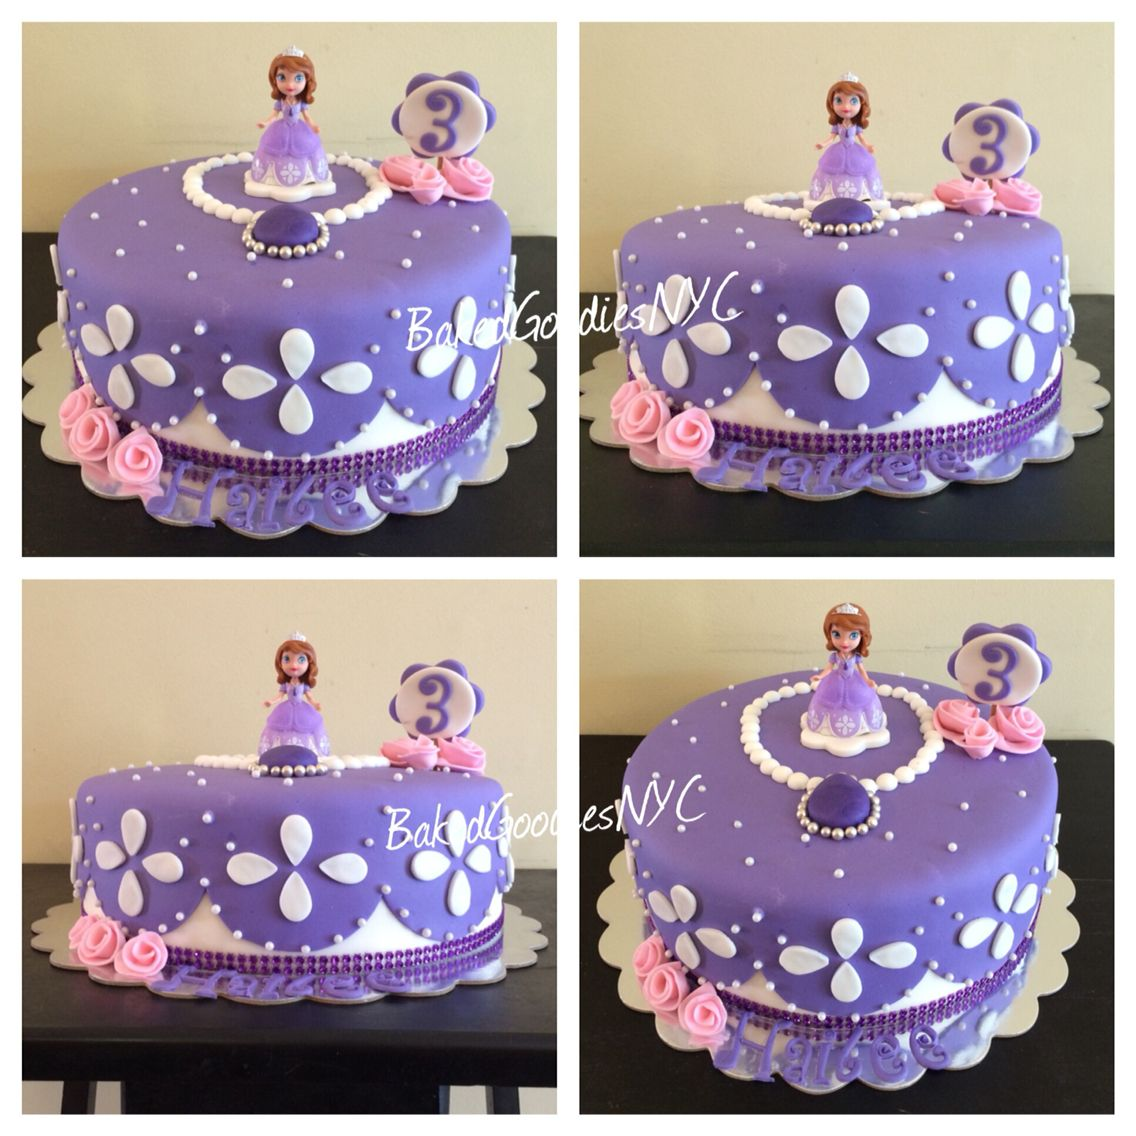 Stupendous Sofia The First Cake With Images Sofia The First Birthday Cake Funny Birthday Cards Online Overcheapnameinfo